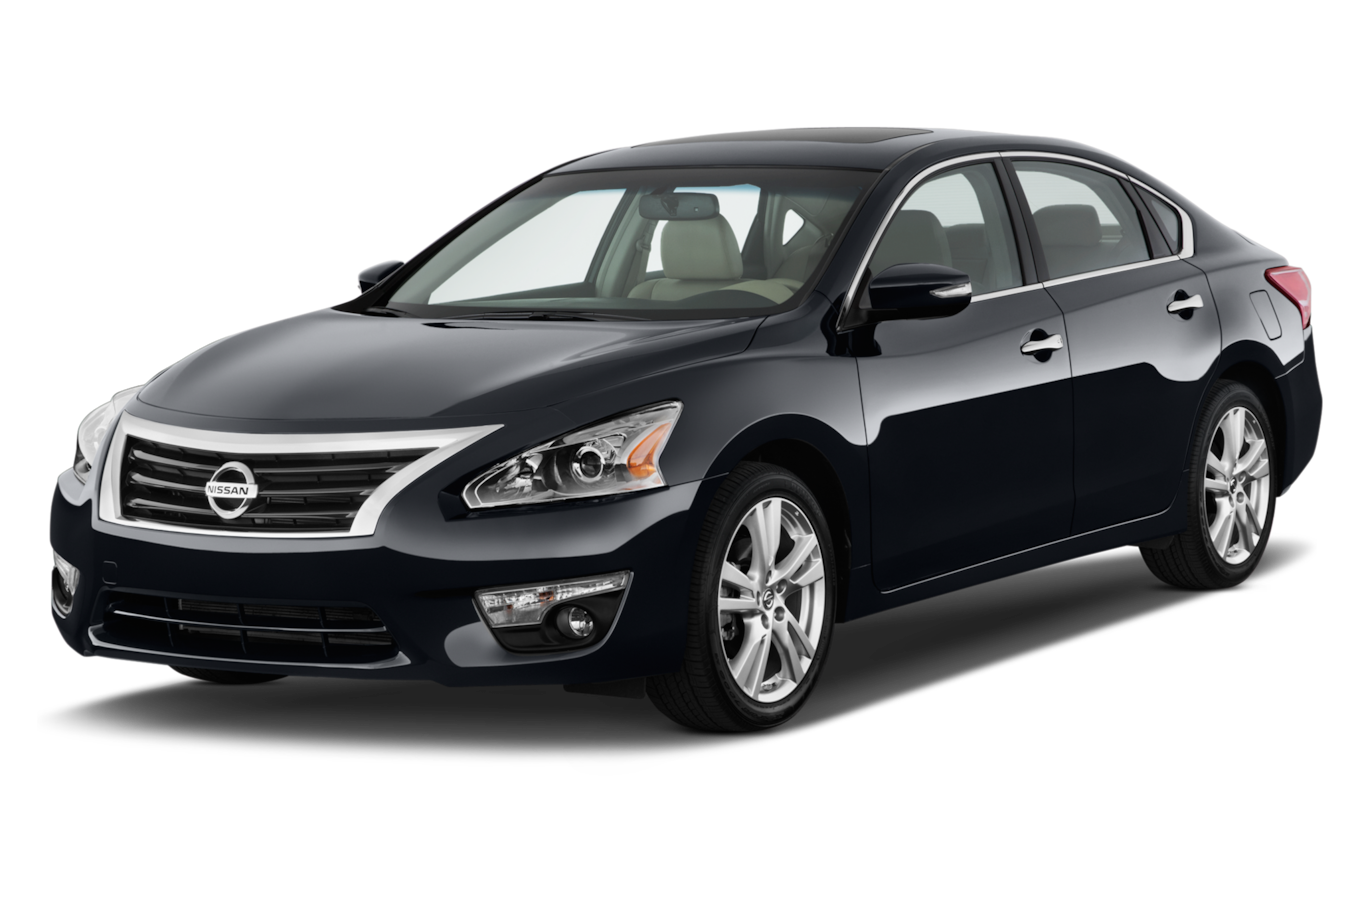 62 Best Review 2015 Nissan Altima New Concept for 2015 Nissan Altima